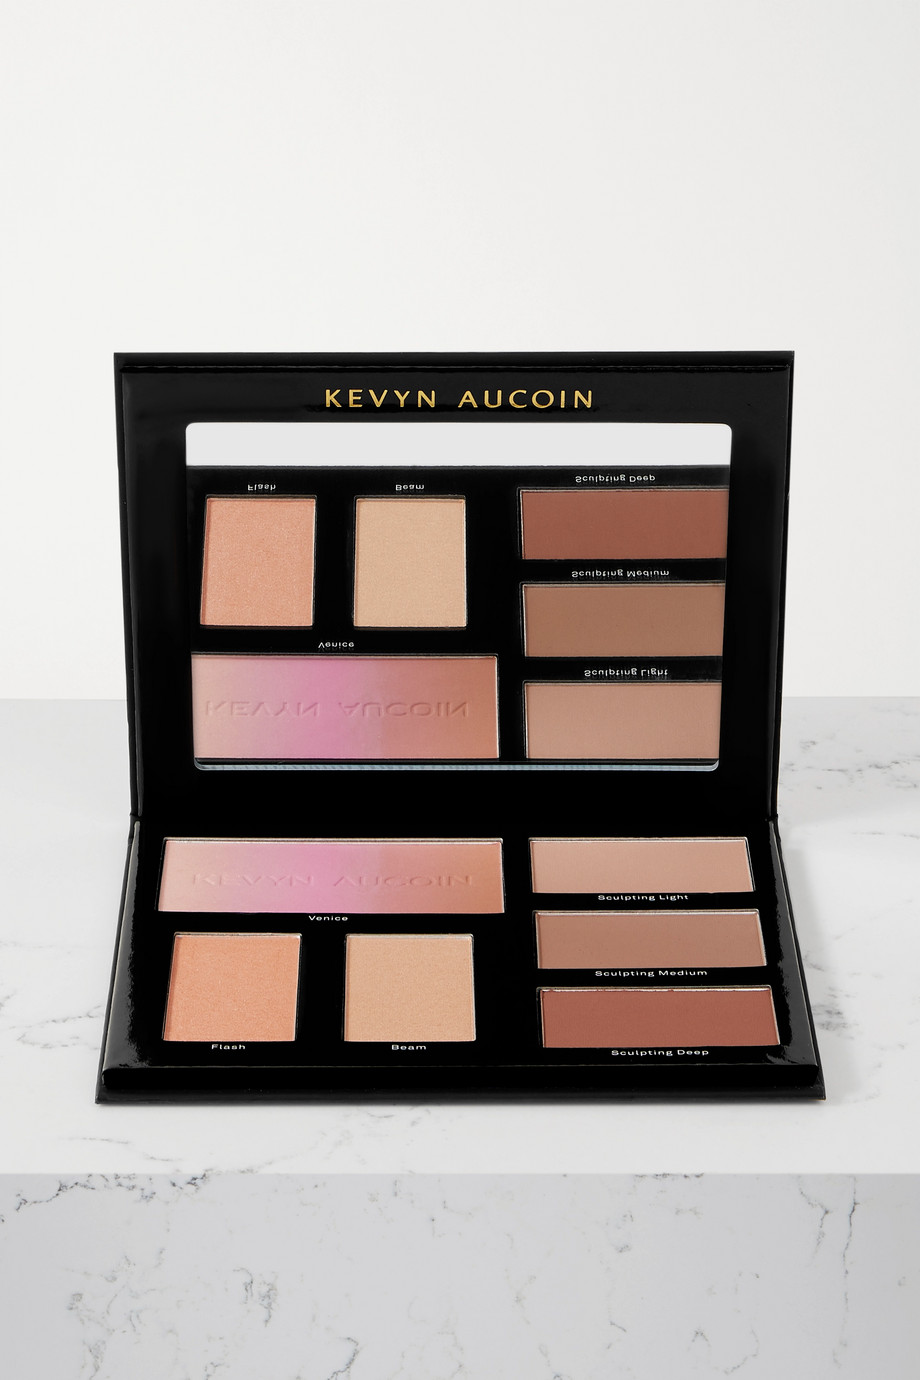 Kevyn Aucoin Contour Book: The Art of Sculpting & Defining Vol III – Make-up-Palette